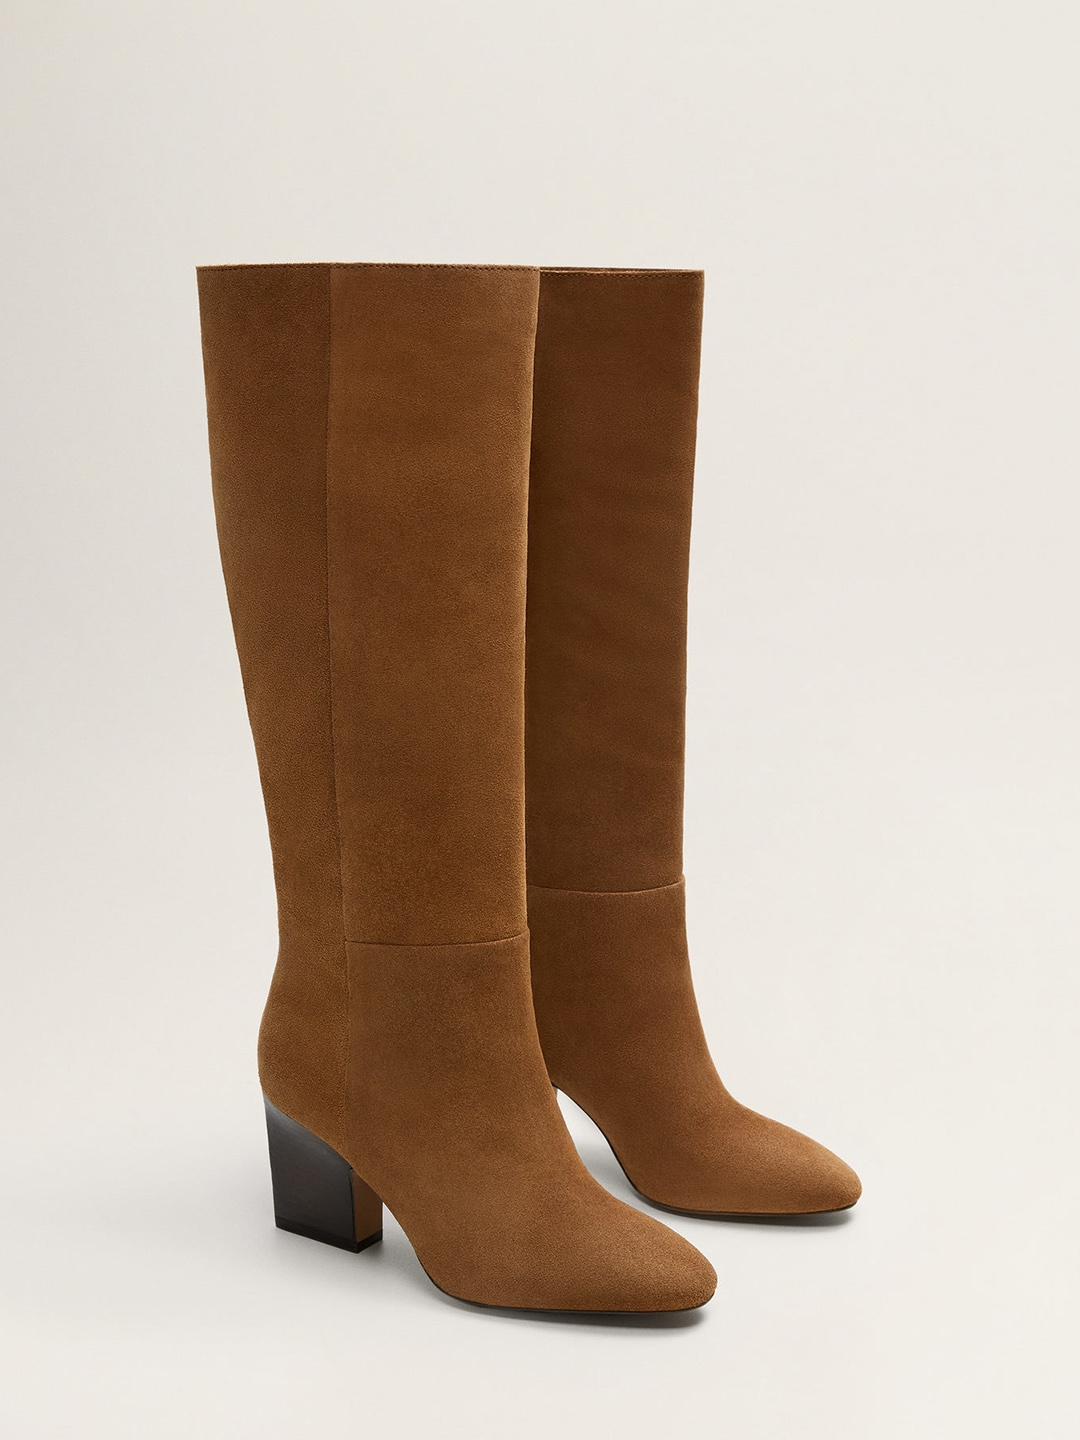 a17bc8633af Buy MANGO Brown Leather Heeled Boots - Heels for Women 7544430